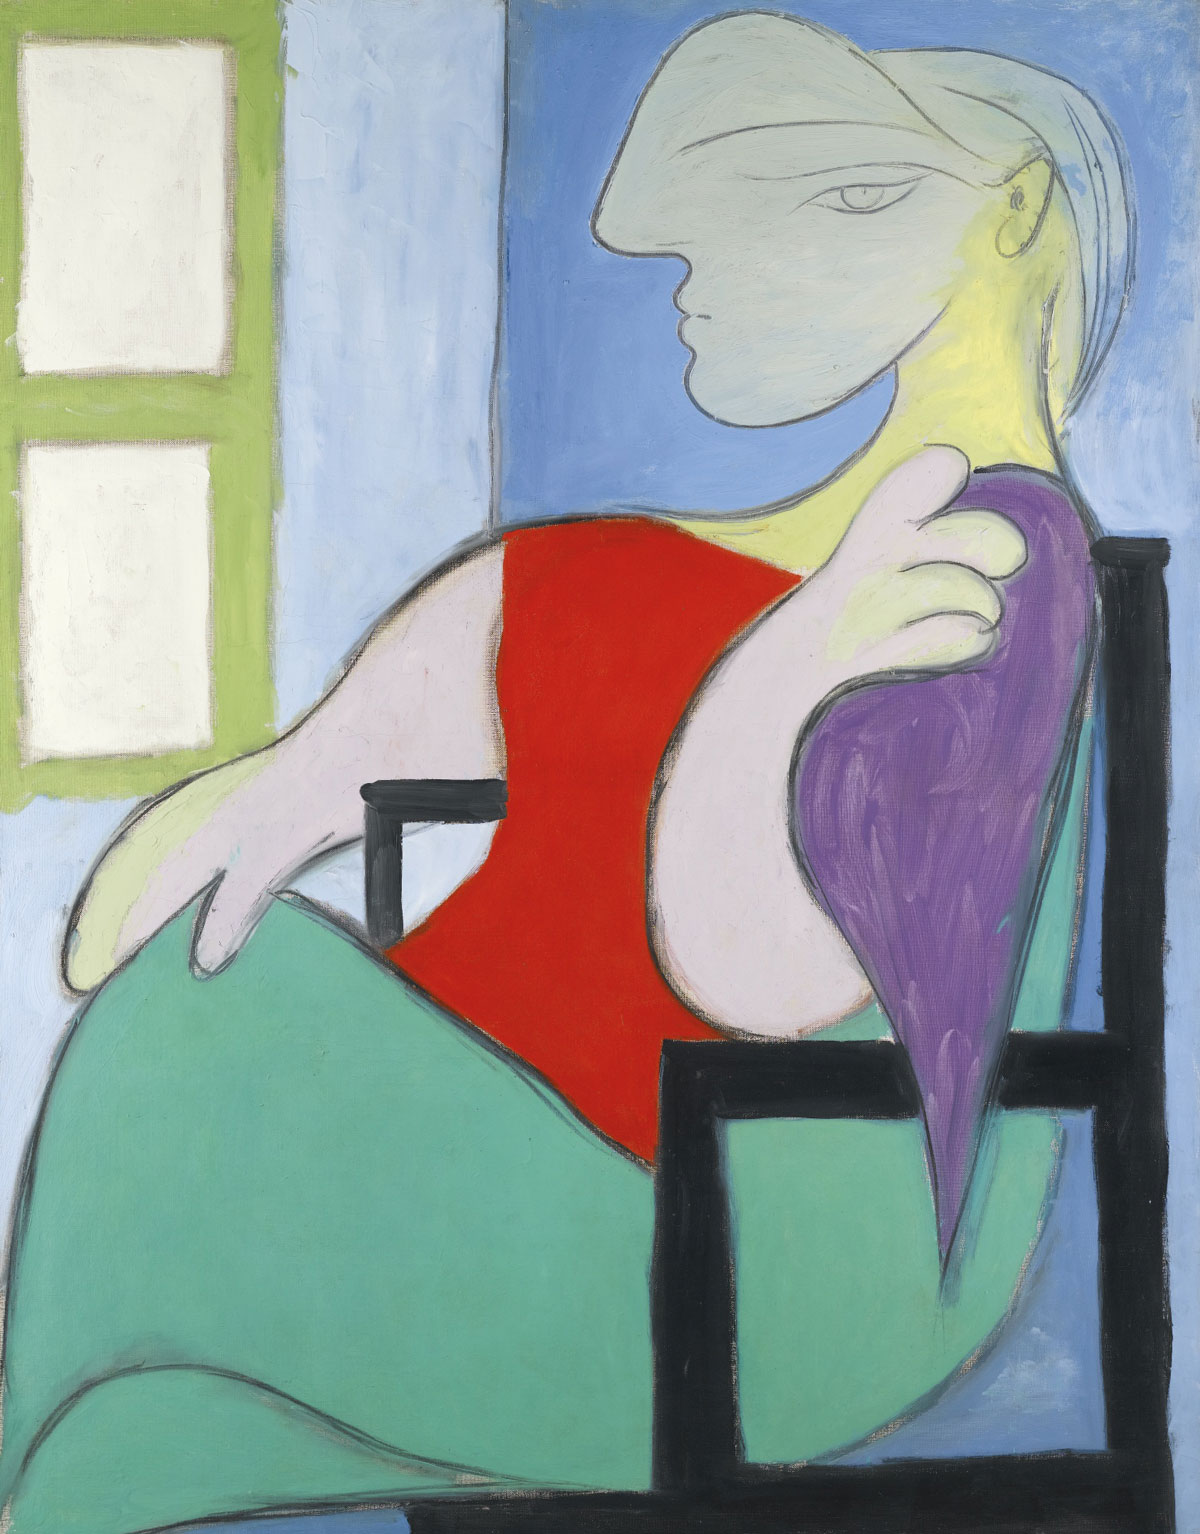 Pablo picasso 39 s 39 golden muse 39 at sotheby 39 s for 56 million for Art et fenetre nice